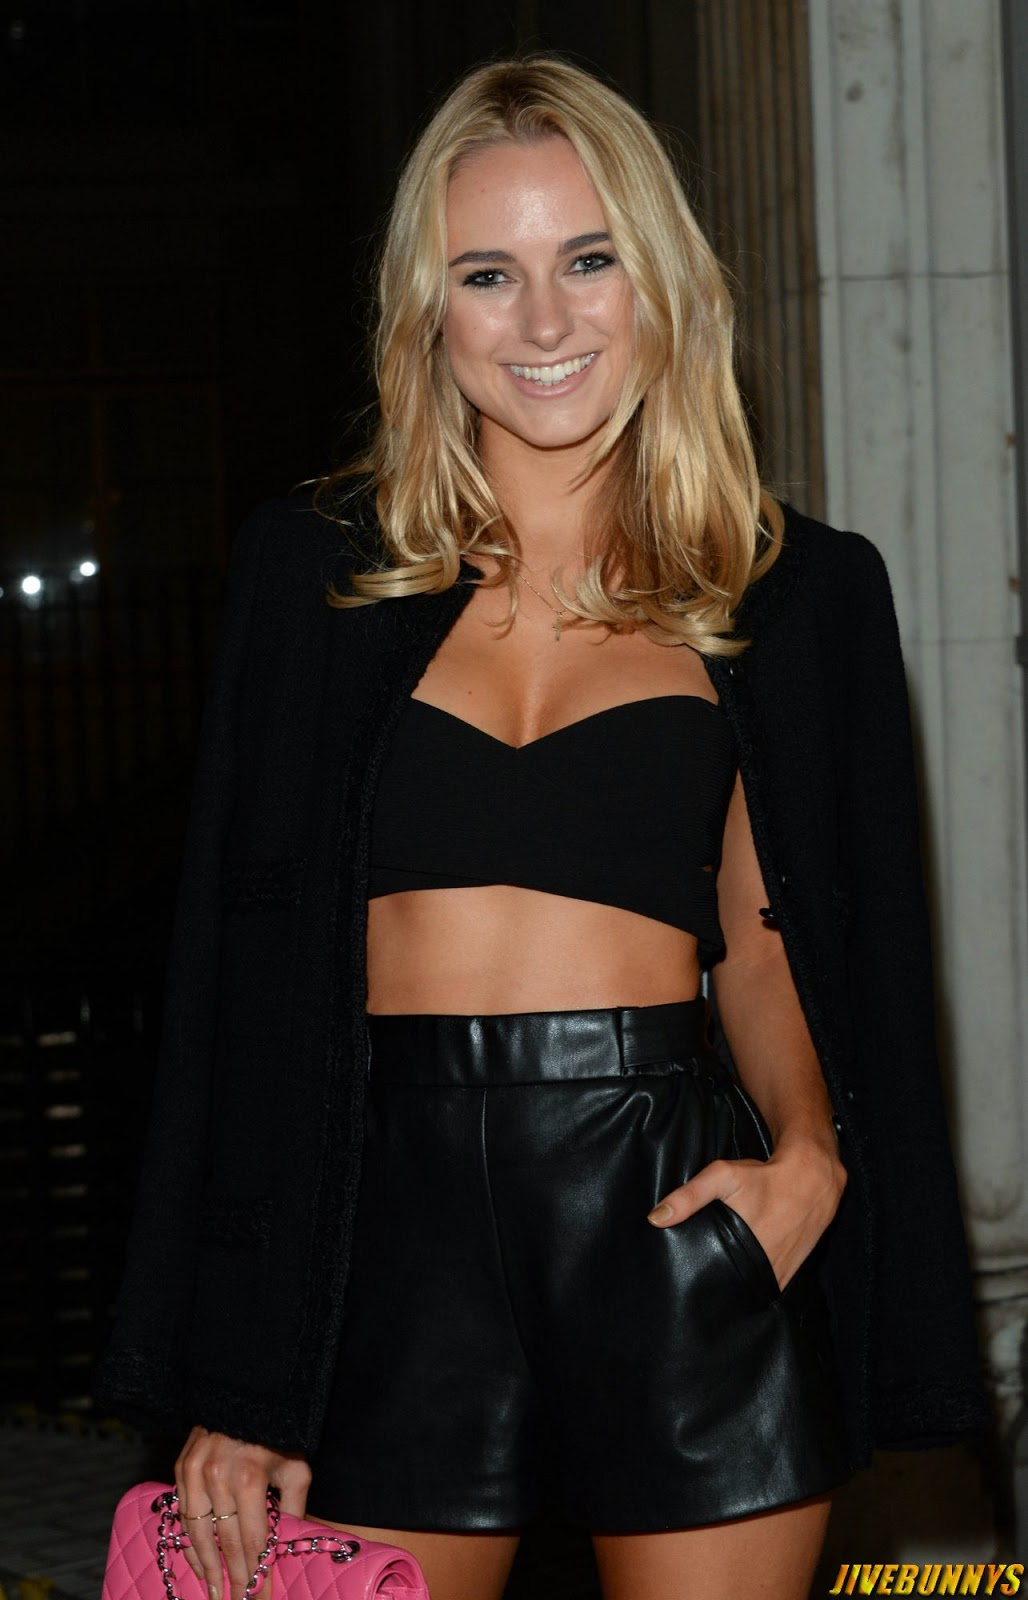 Kimberley Garner @ LFW S/S 2015: Sorapol Catwalk Show in London - 14/09/2014